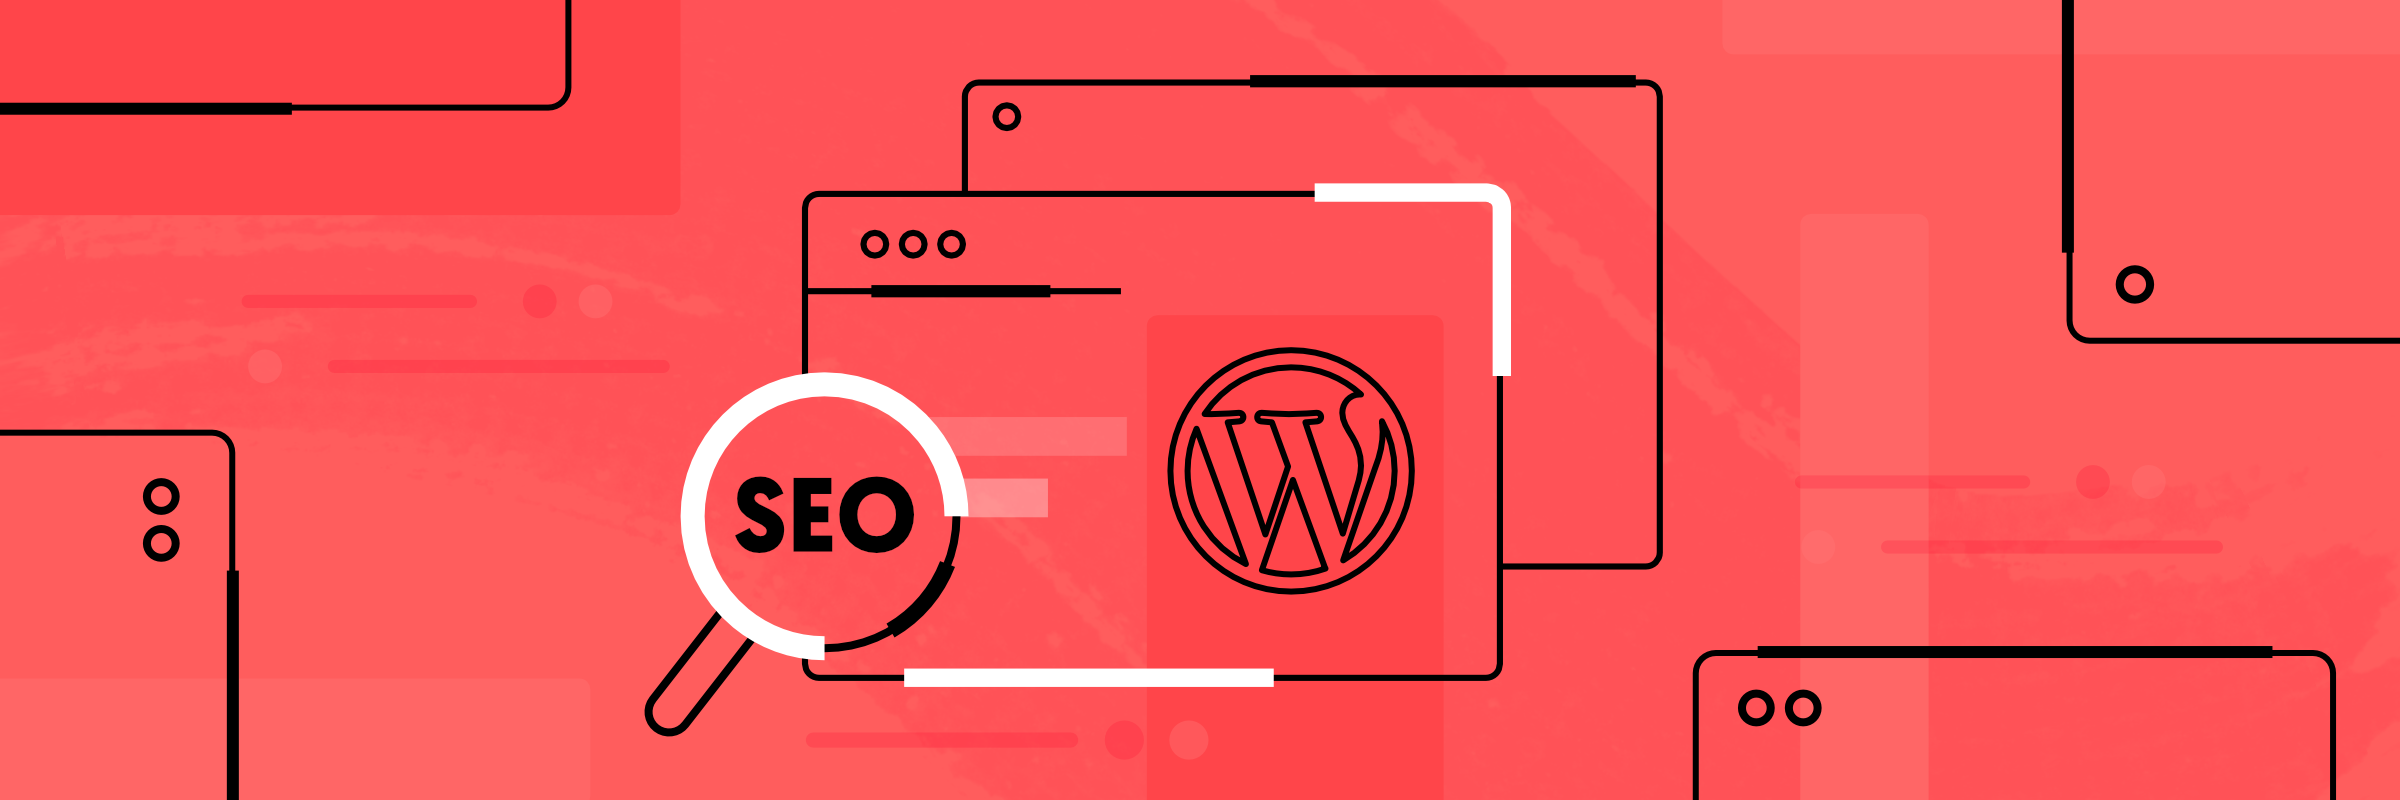 SXO for WordPress - Combine SEO and UX to Improve Your Website